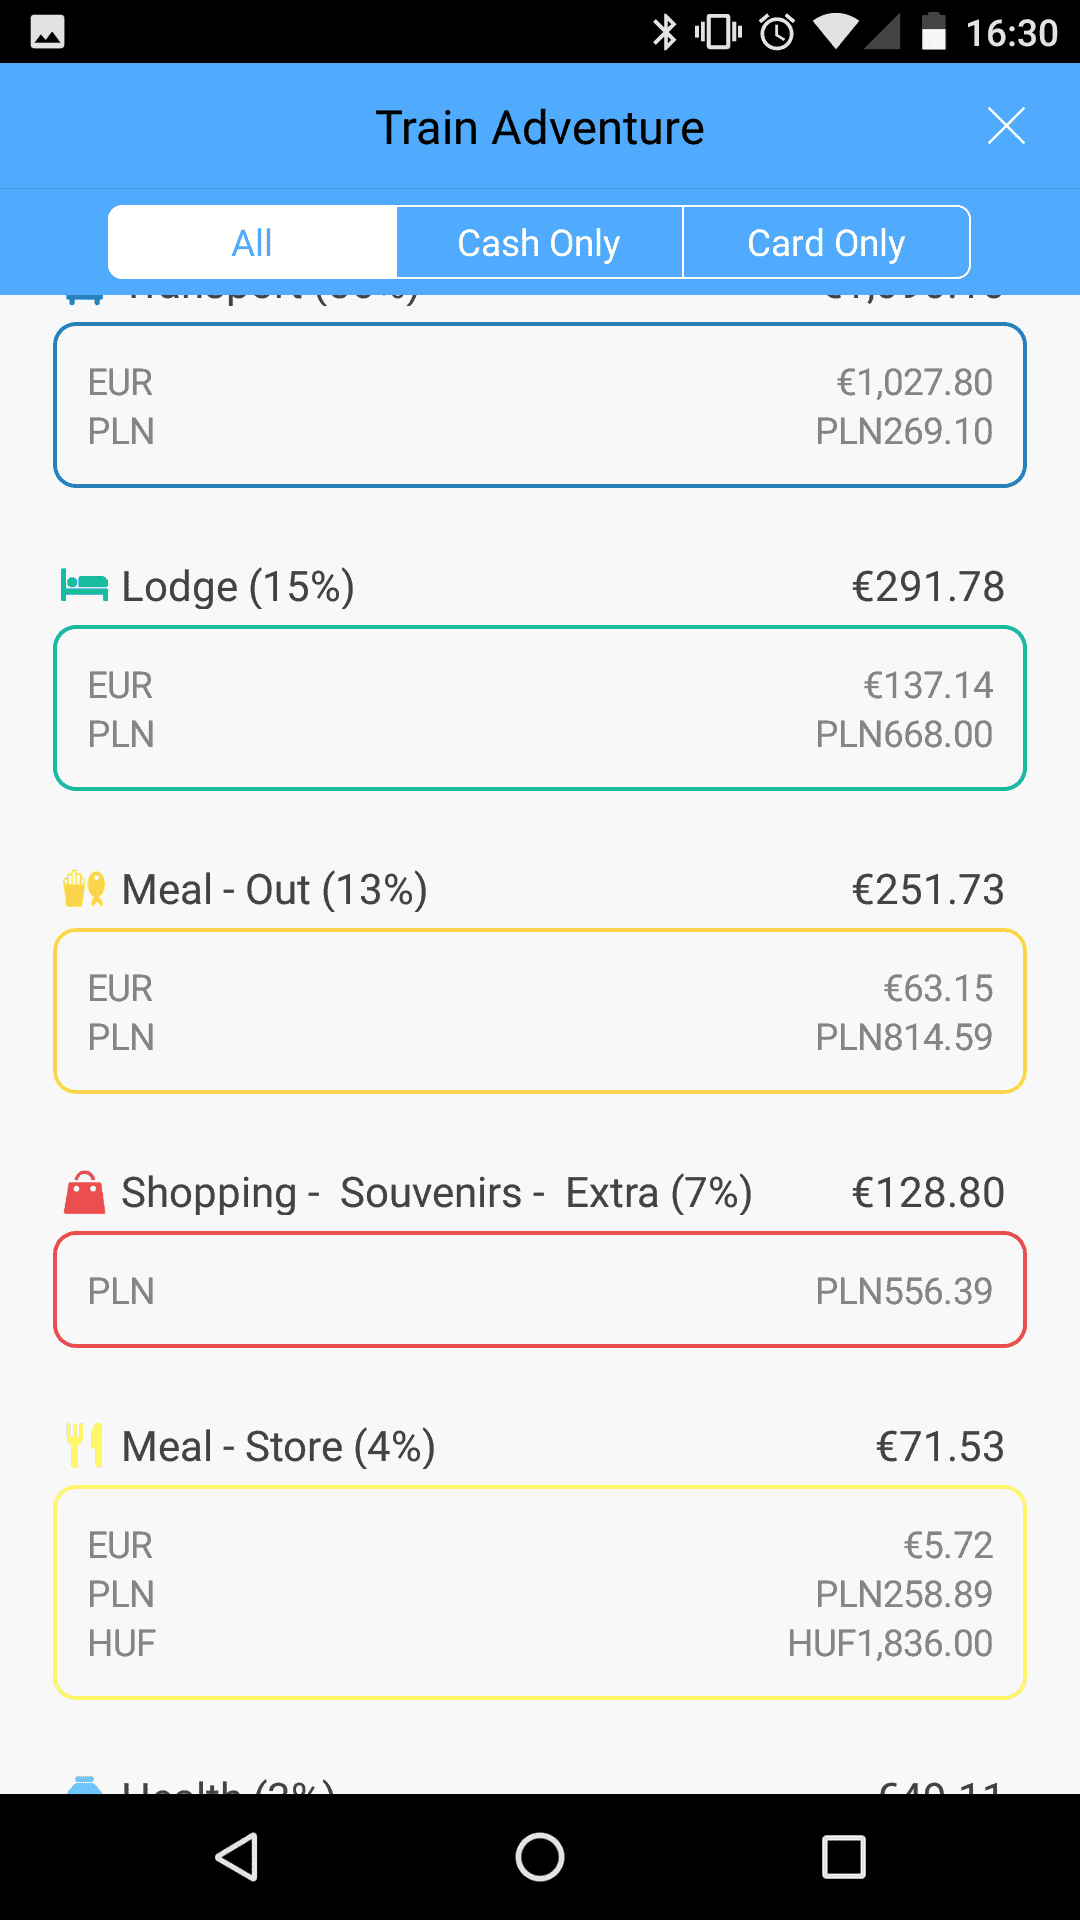 Best Travel Budget App - Money Management App - Trabee Pocket Screenshot - Only Once Today